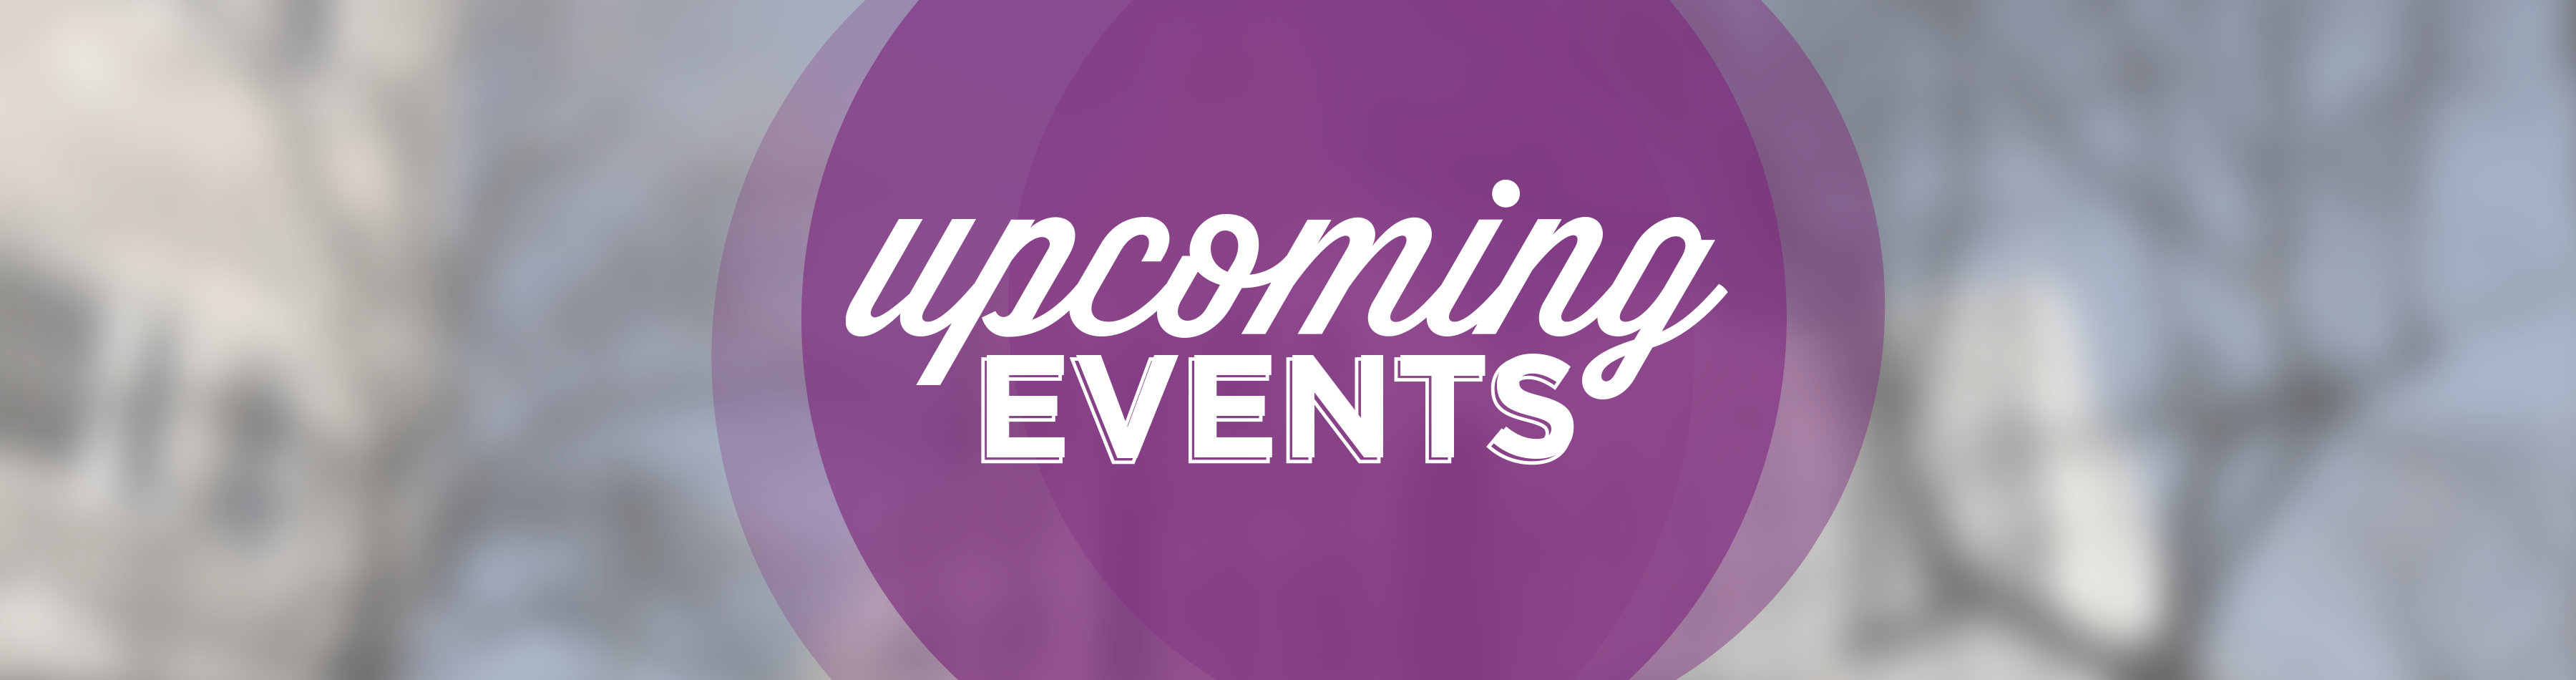 Churches Upcoming Events Clipart - Clipart Suggest